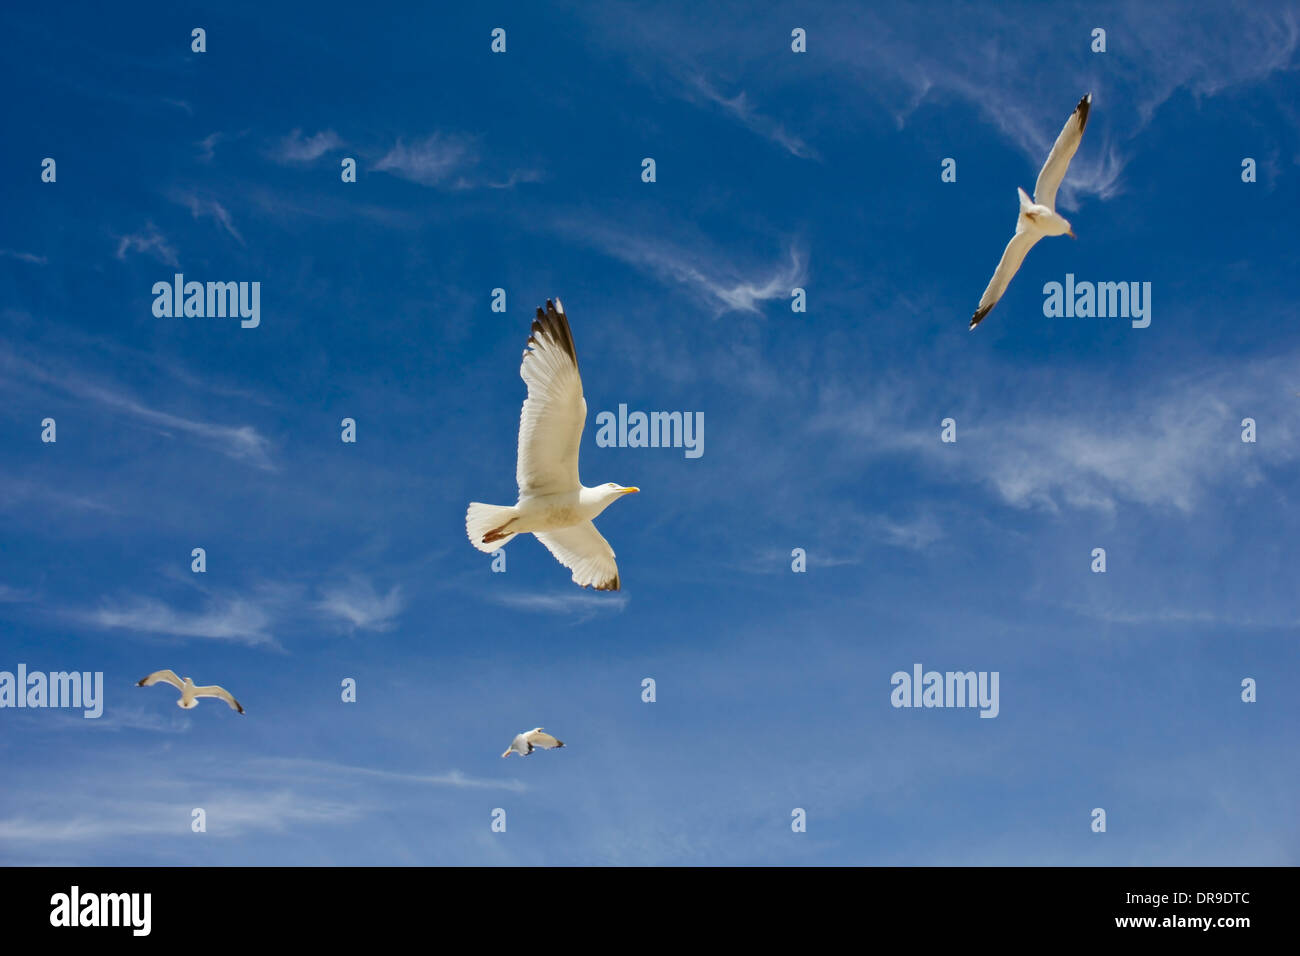 White Seagulls flying against a blue sky with wispy clouds. - Stock Image